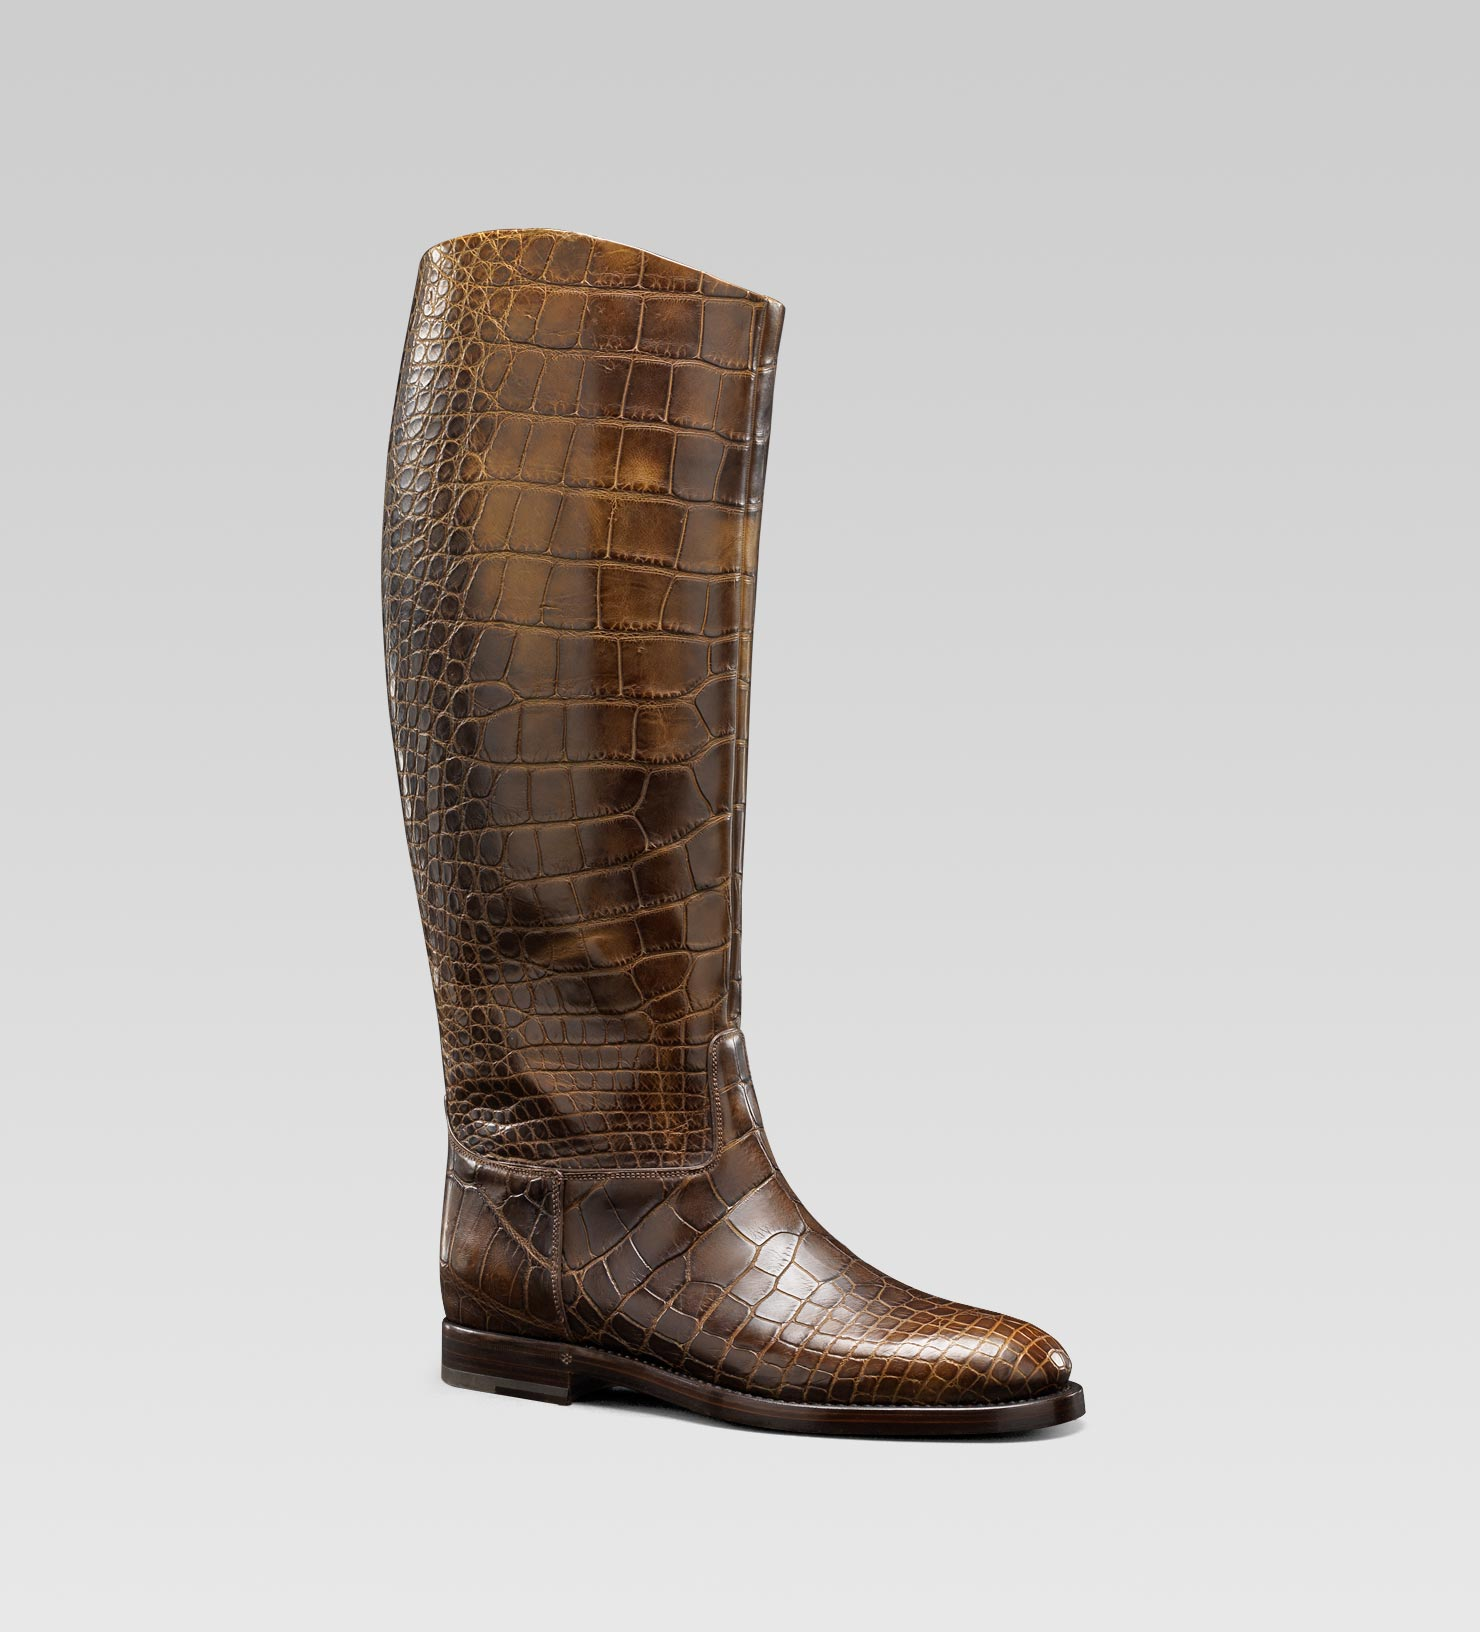 Gucci Mens Collection Riding Boot With Gucci Crest Detail